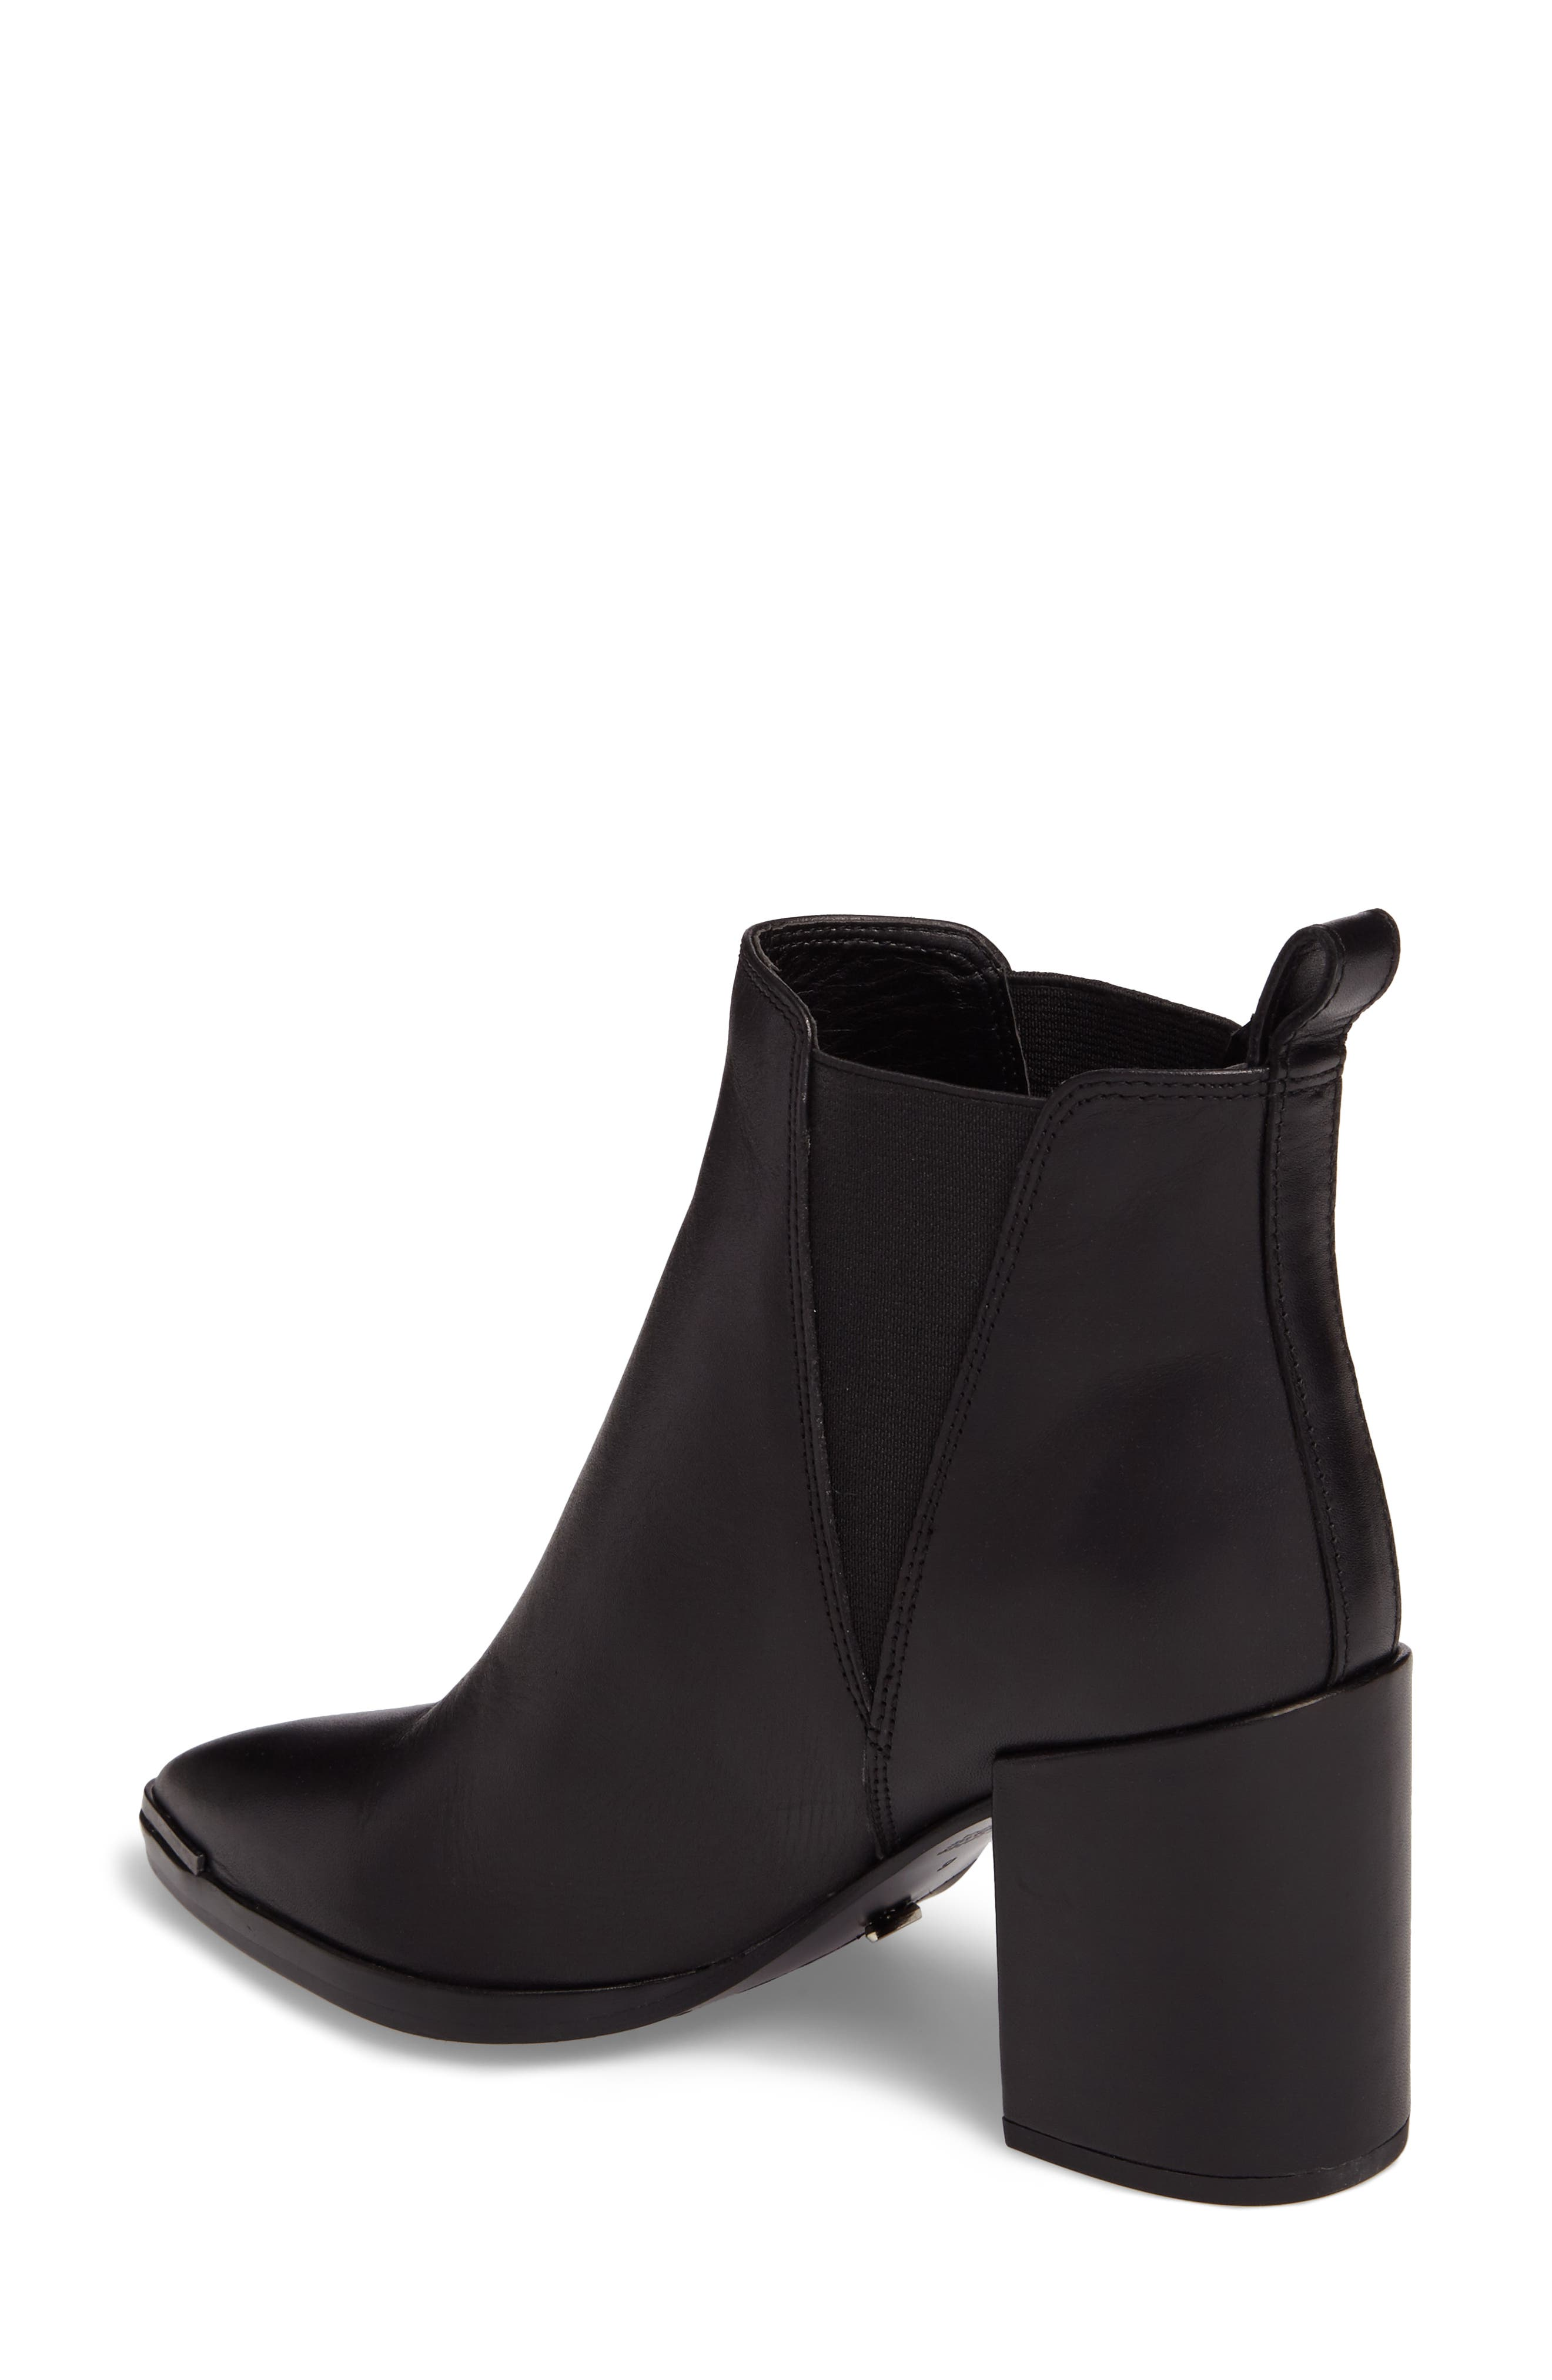 Bello Pointy Toe Bootie,                             Alternate thumbnail 2, color,                             Black Jetta Leather